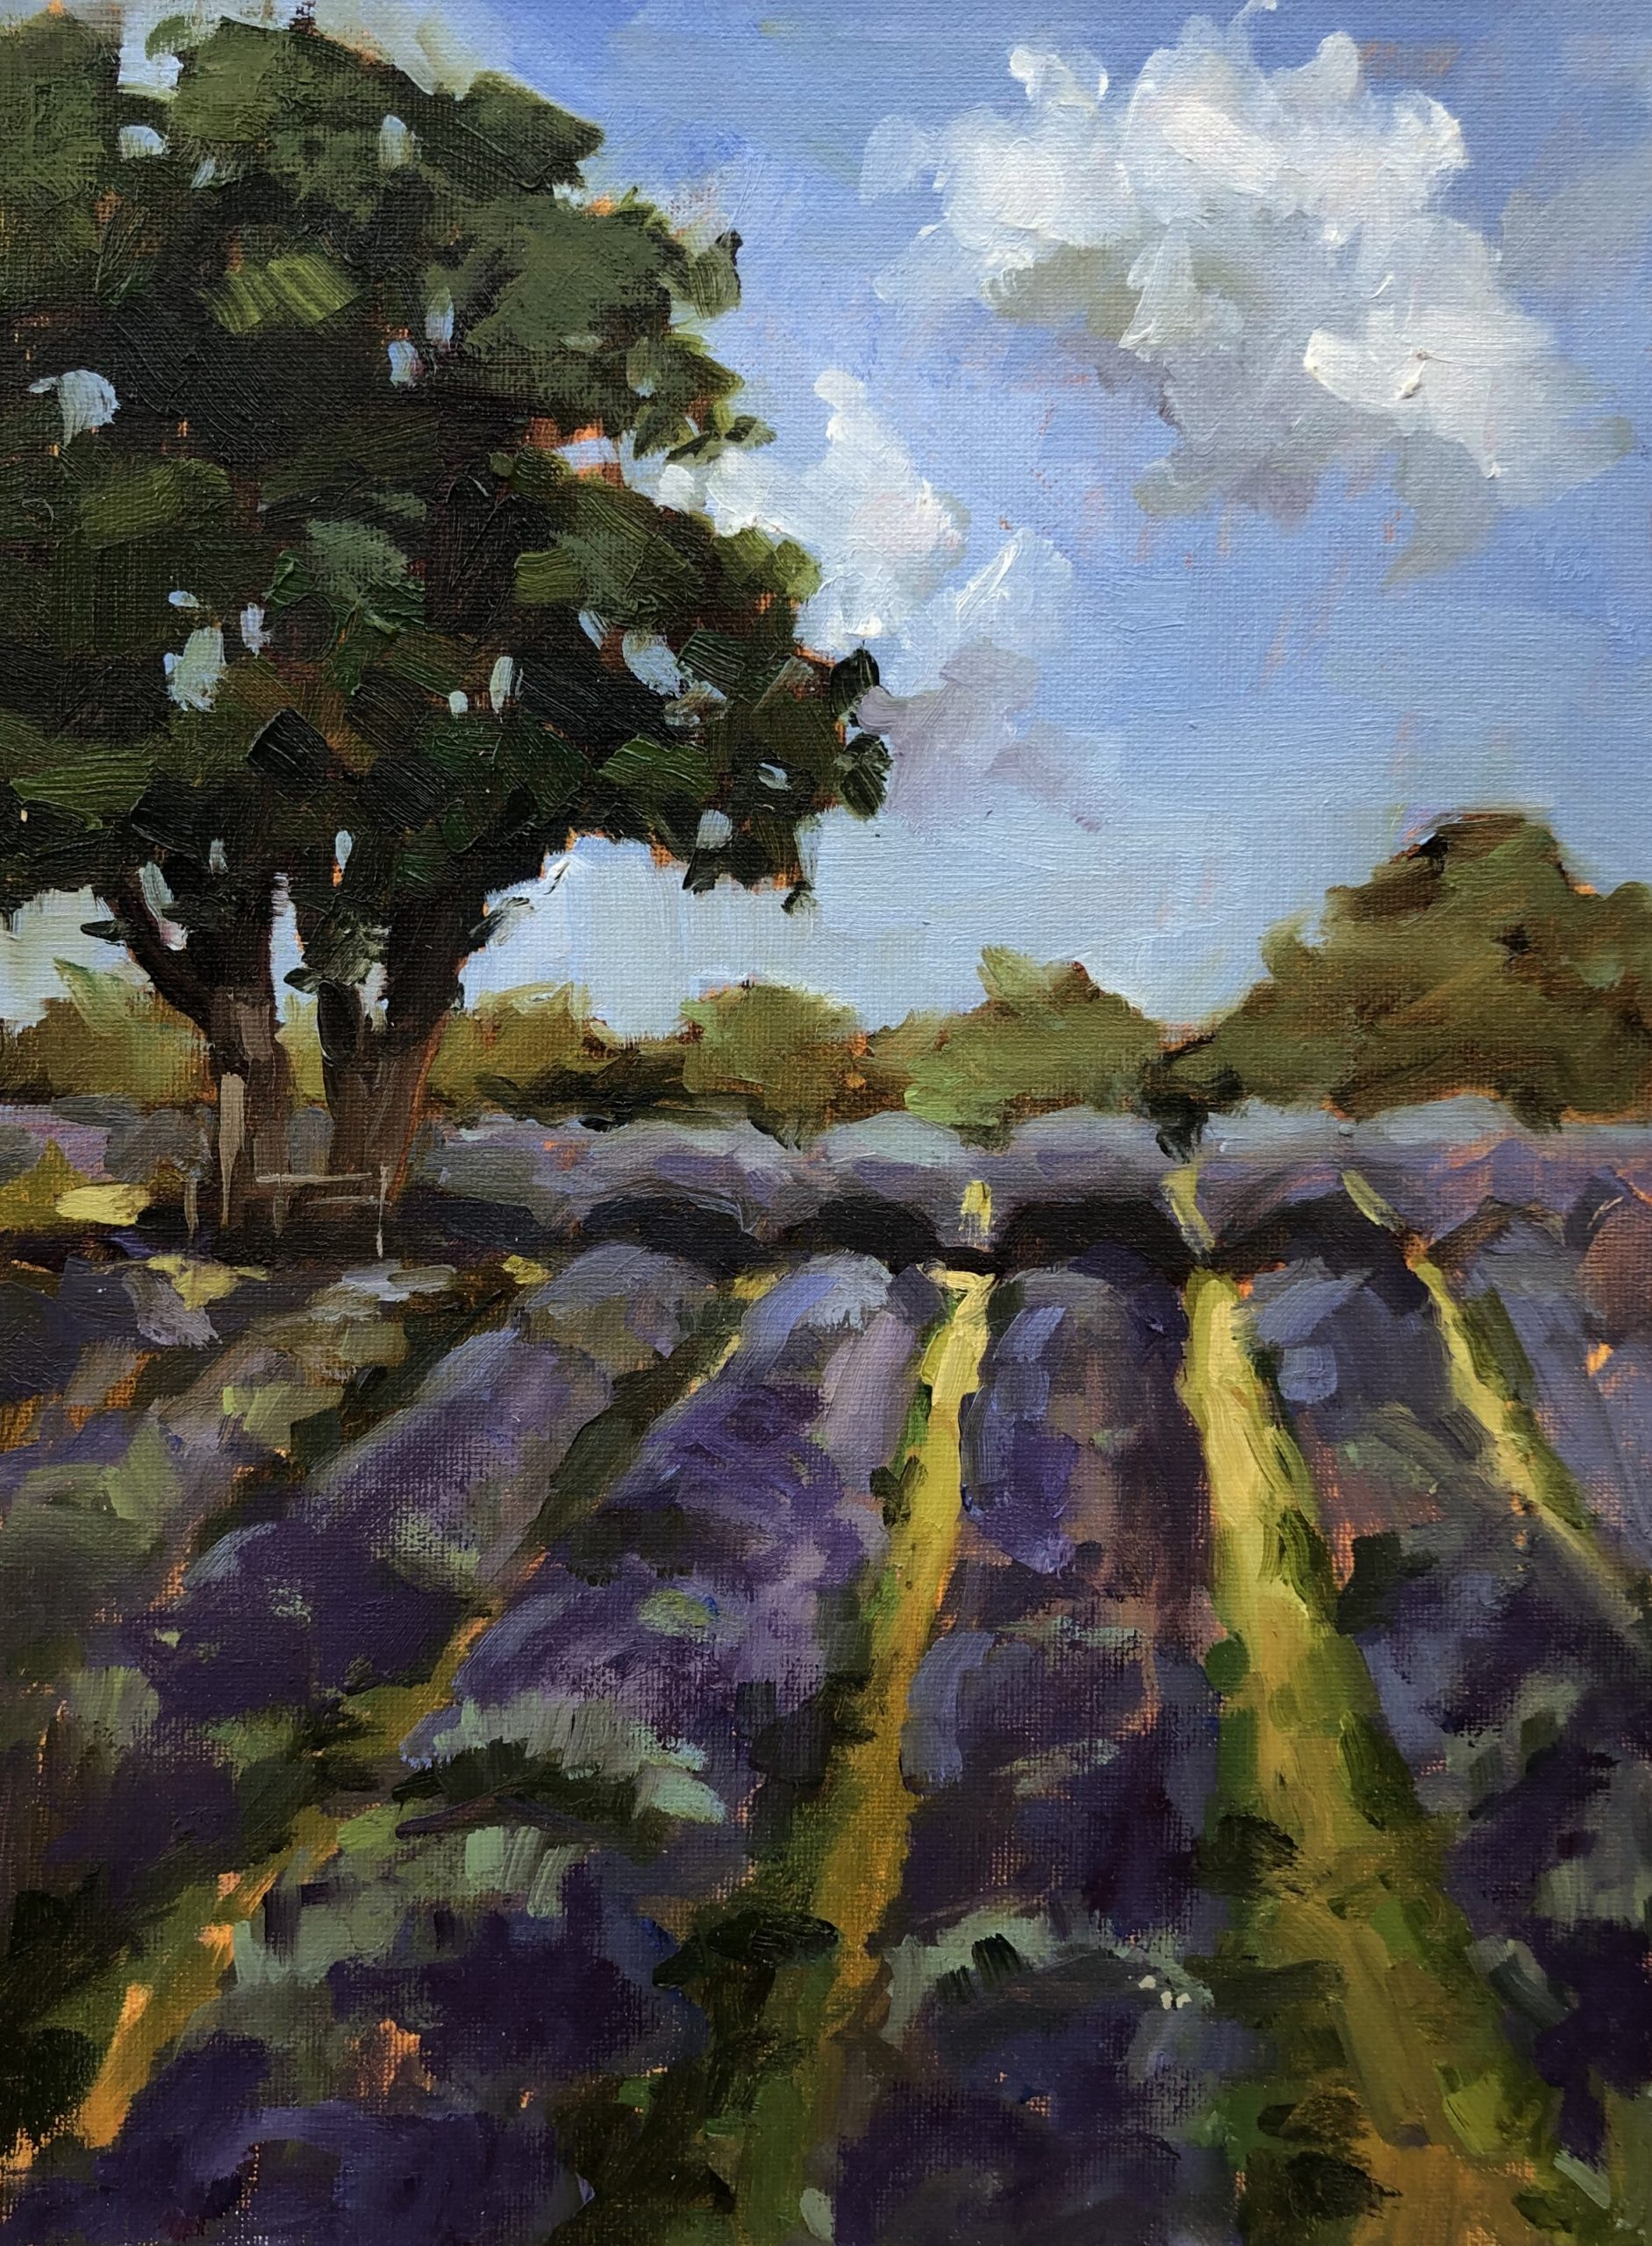 Lacender Rows Mayfield by Penny German